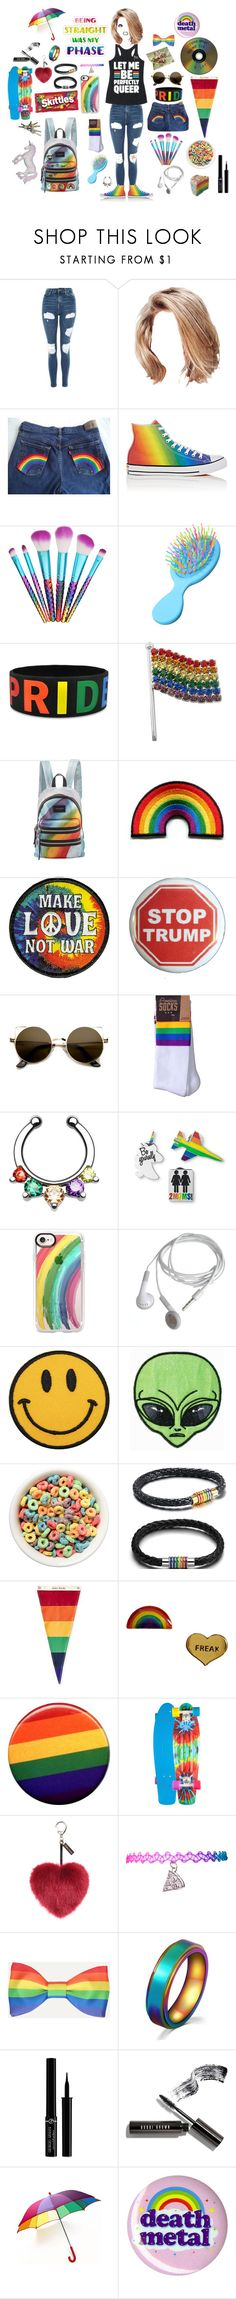 """""""Let Me Be Perfectly Queer"""" by music-is-harmony ❤ liked on Polyvore featuring Topshop, Converse, Study, Marc Jacobs, Trump Home, INDIE HAIR, Casetify, Mark & Graham, Me & Zena and Penny"""